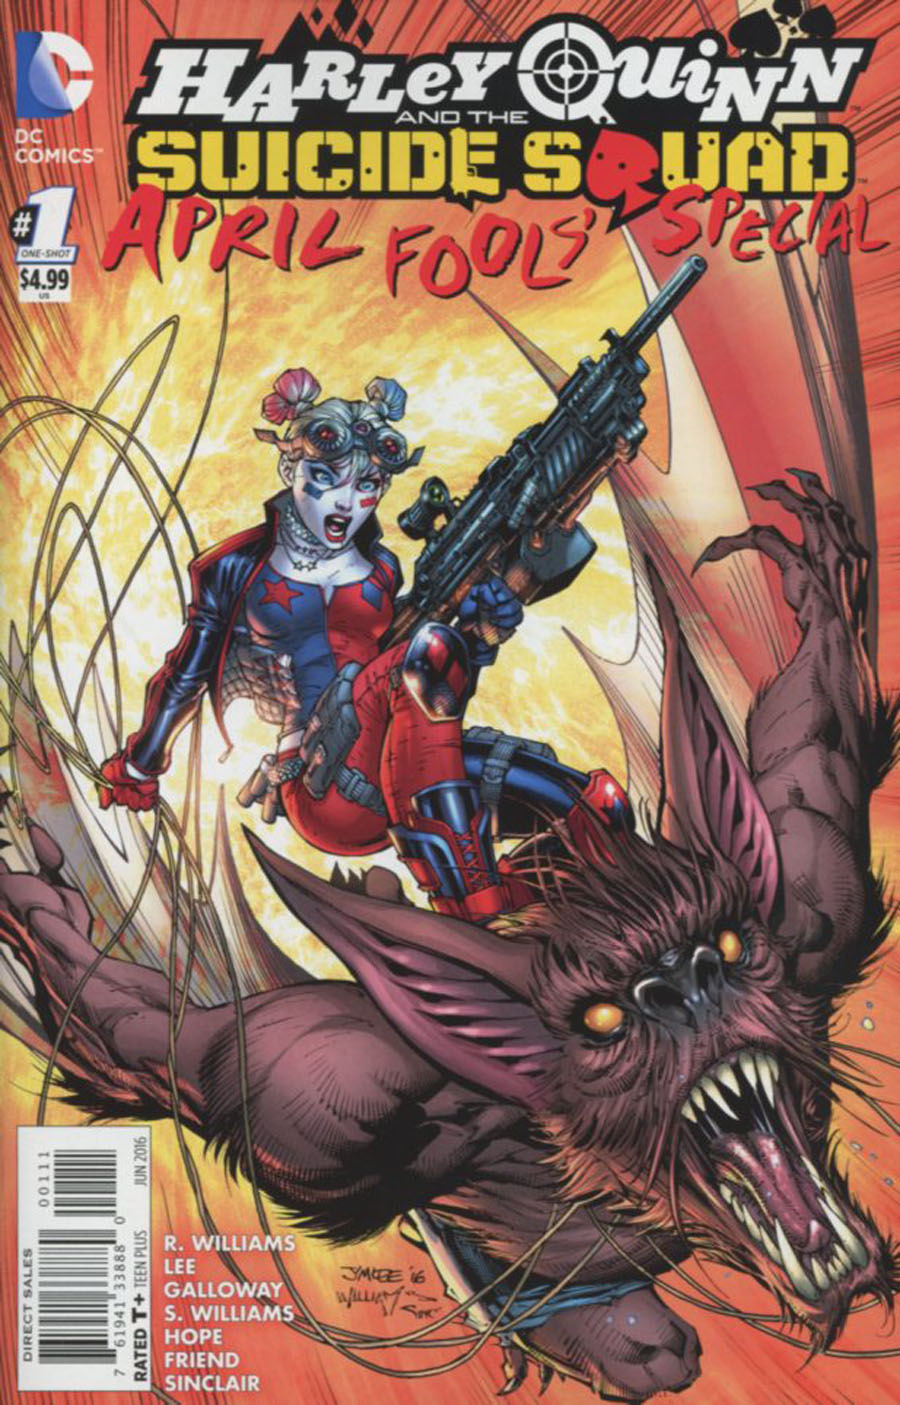 Harley Quinn And The Suicide Squad April Fools Special #1 Cover A Regular Jim Lee Cover